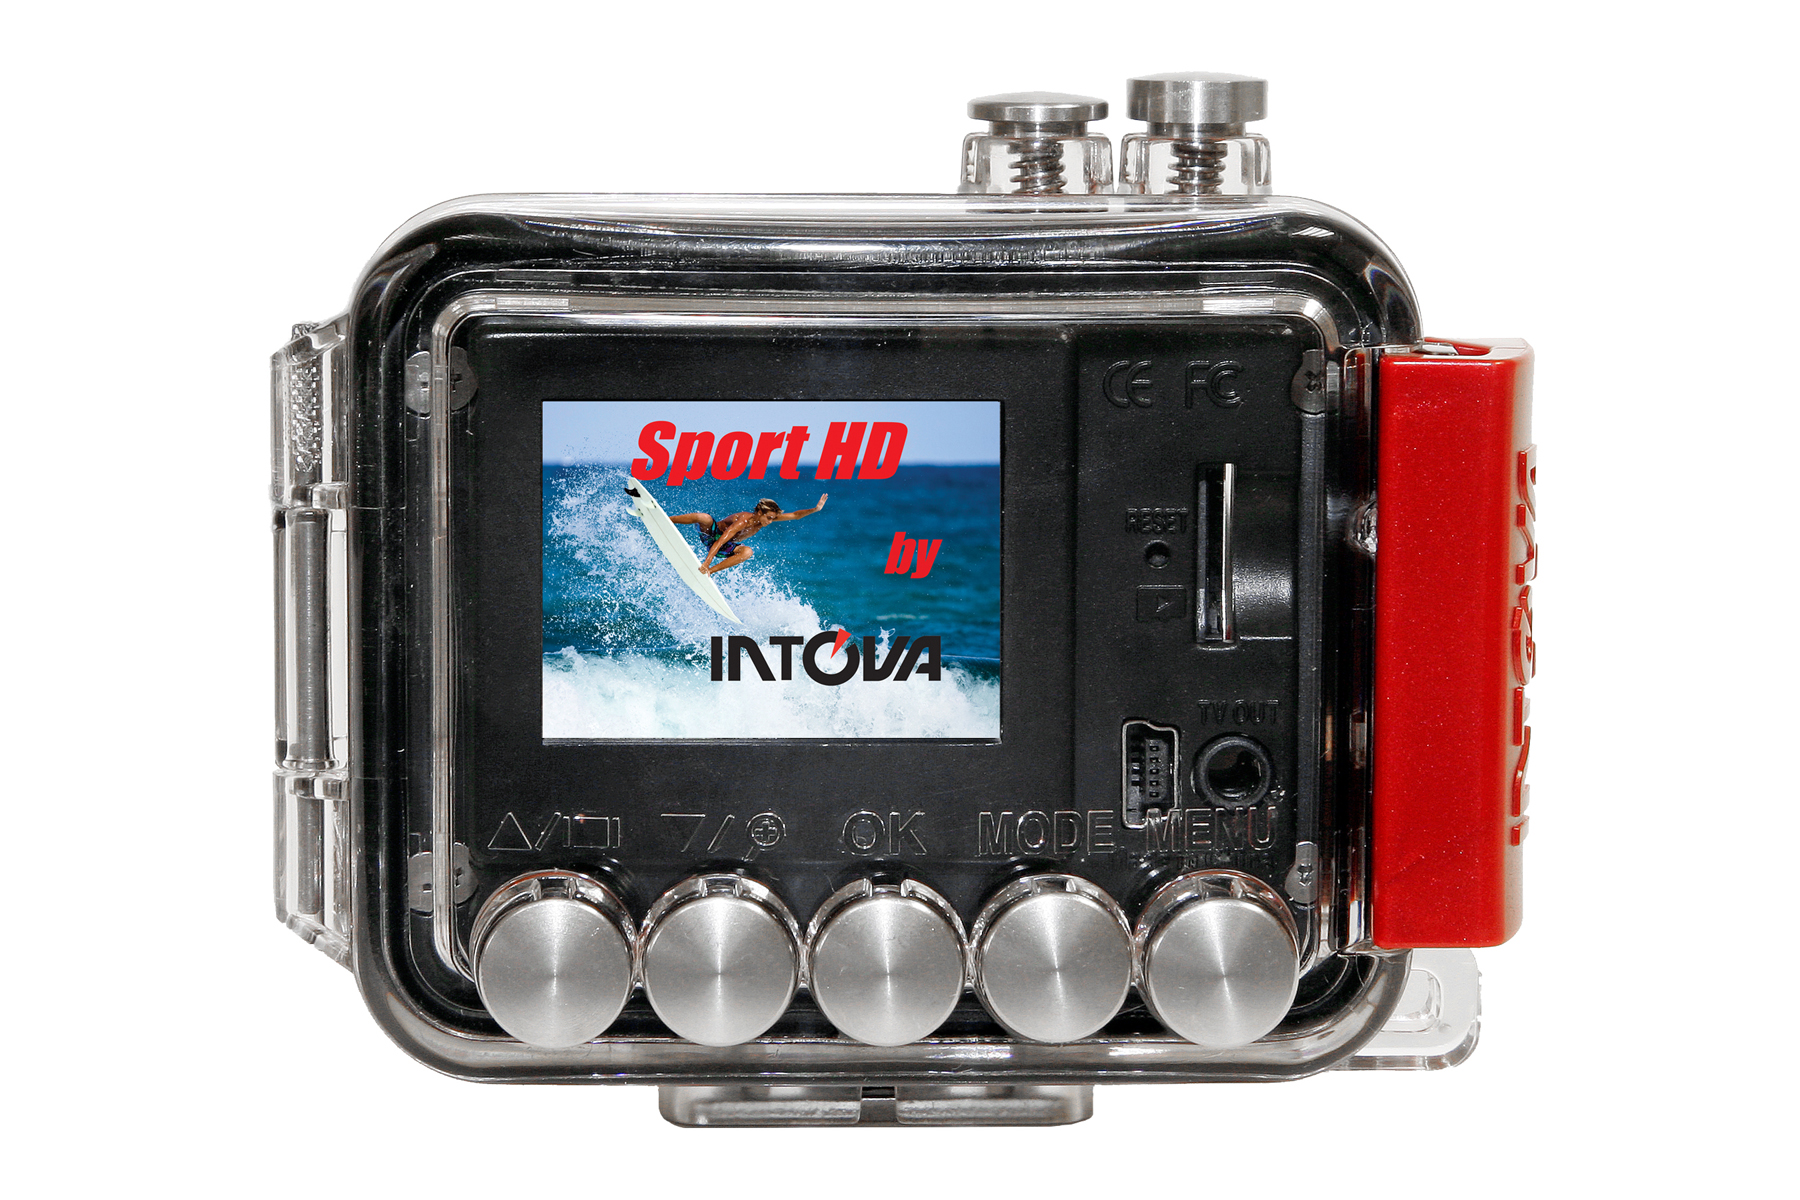 Sport HD II rear view with surfer graphic 4x6